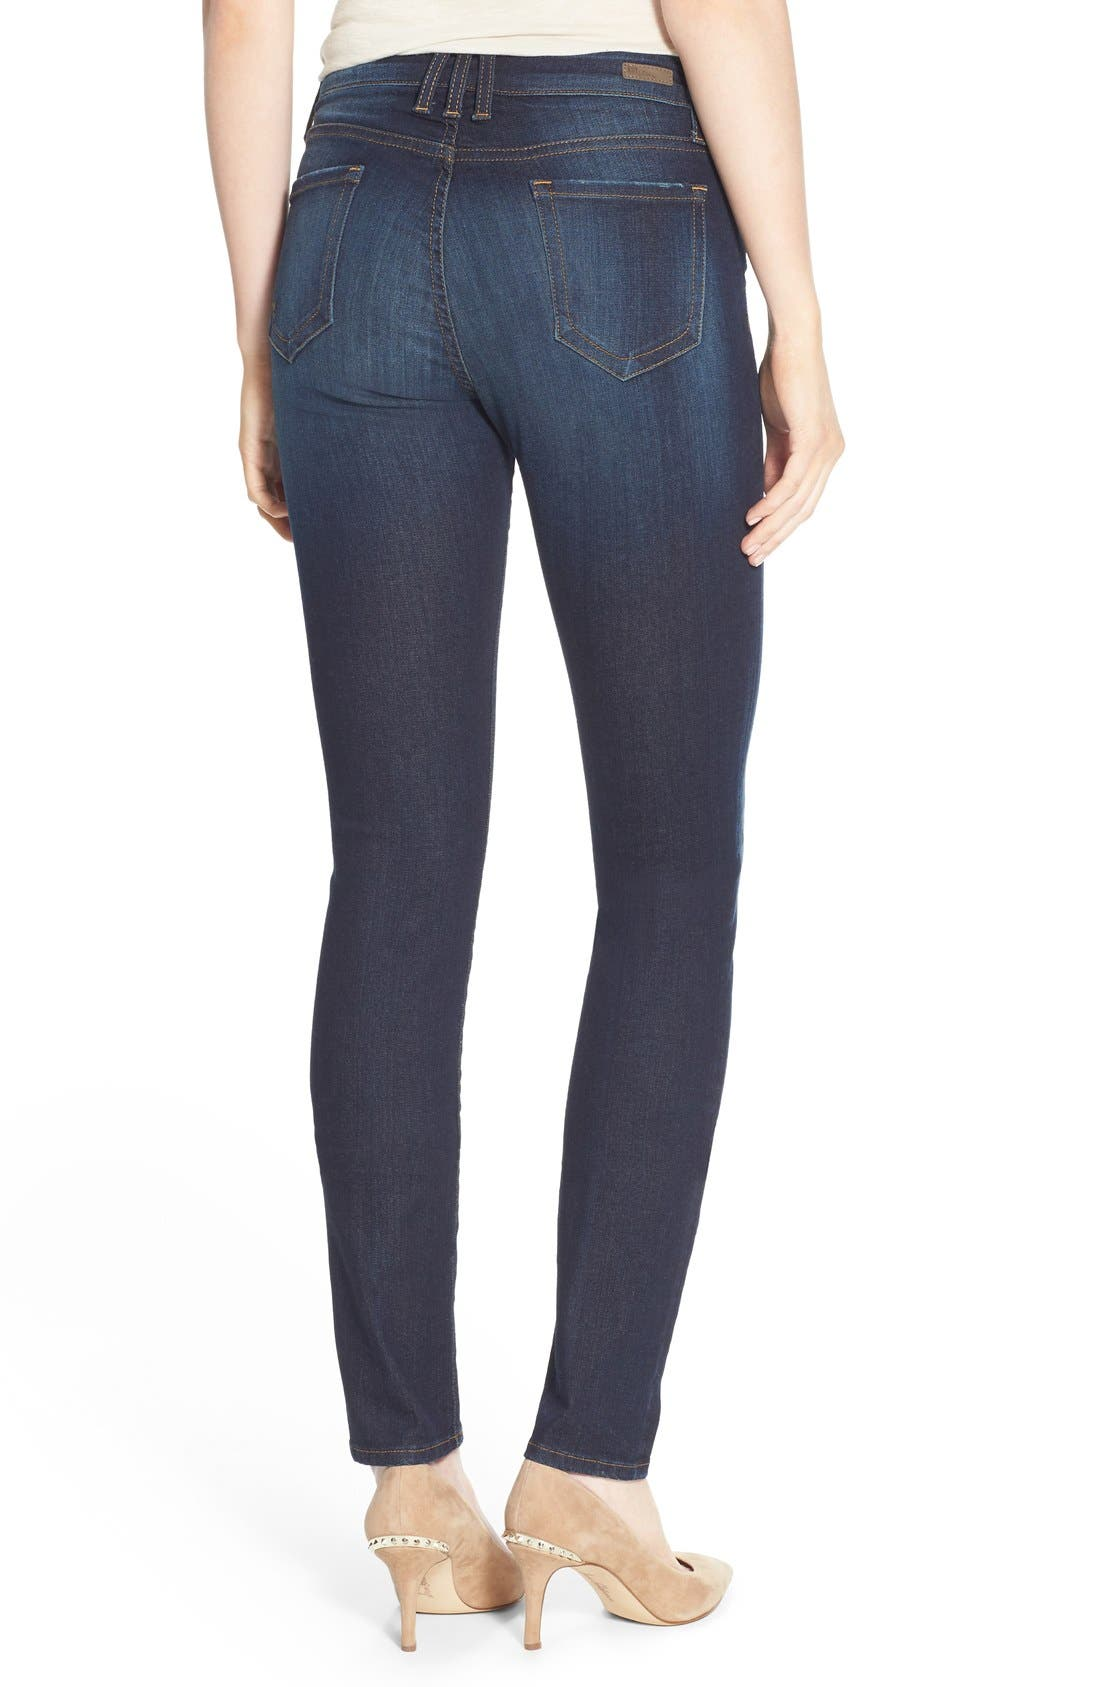 'Diana' Stretch Skinny Jeans,                             Alternate thumbnail 3, color,                             Blinding